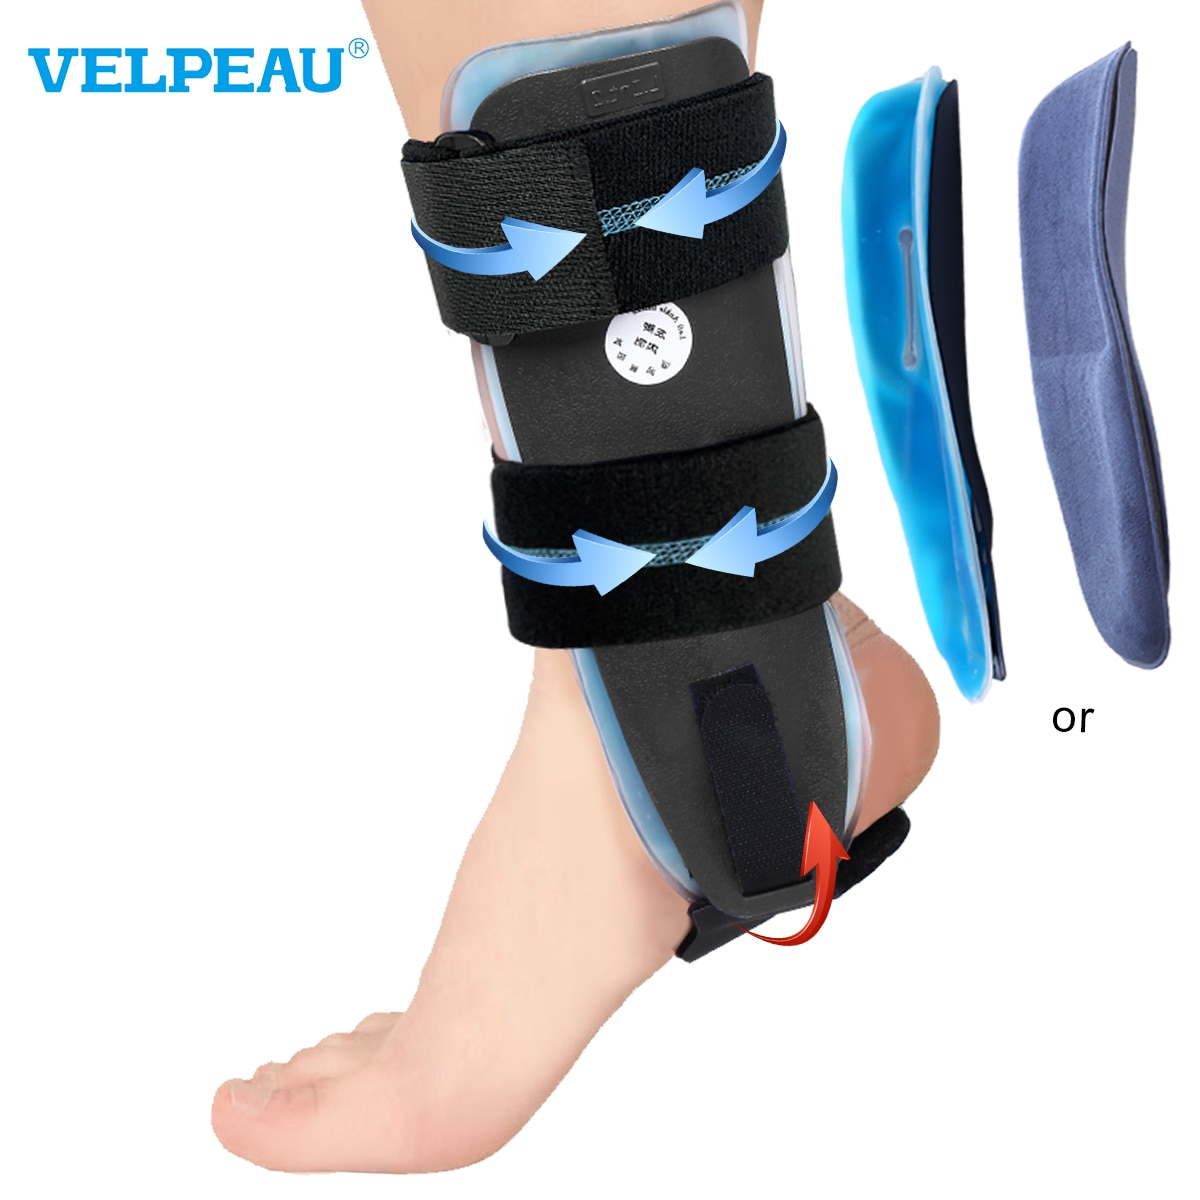 VELPEAU Ankle Support Adjustable Splint For Casts After Sprained Tendonitis Surgery Ankle Protector